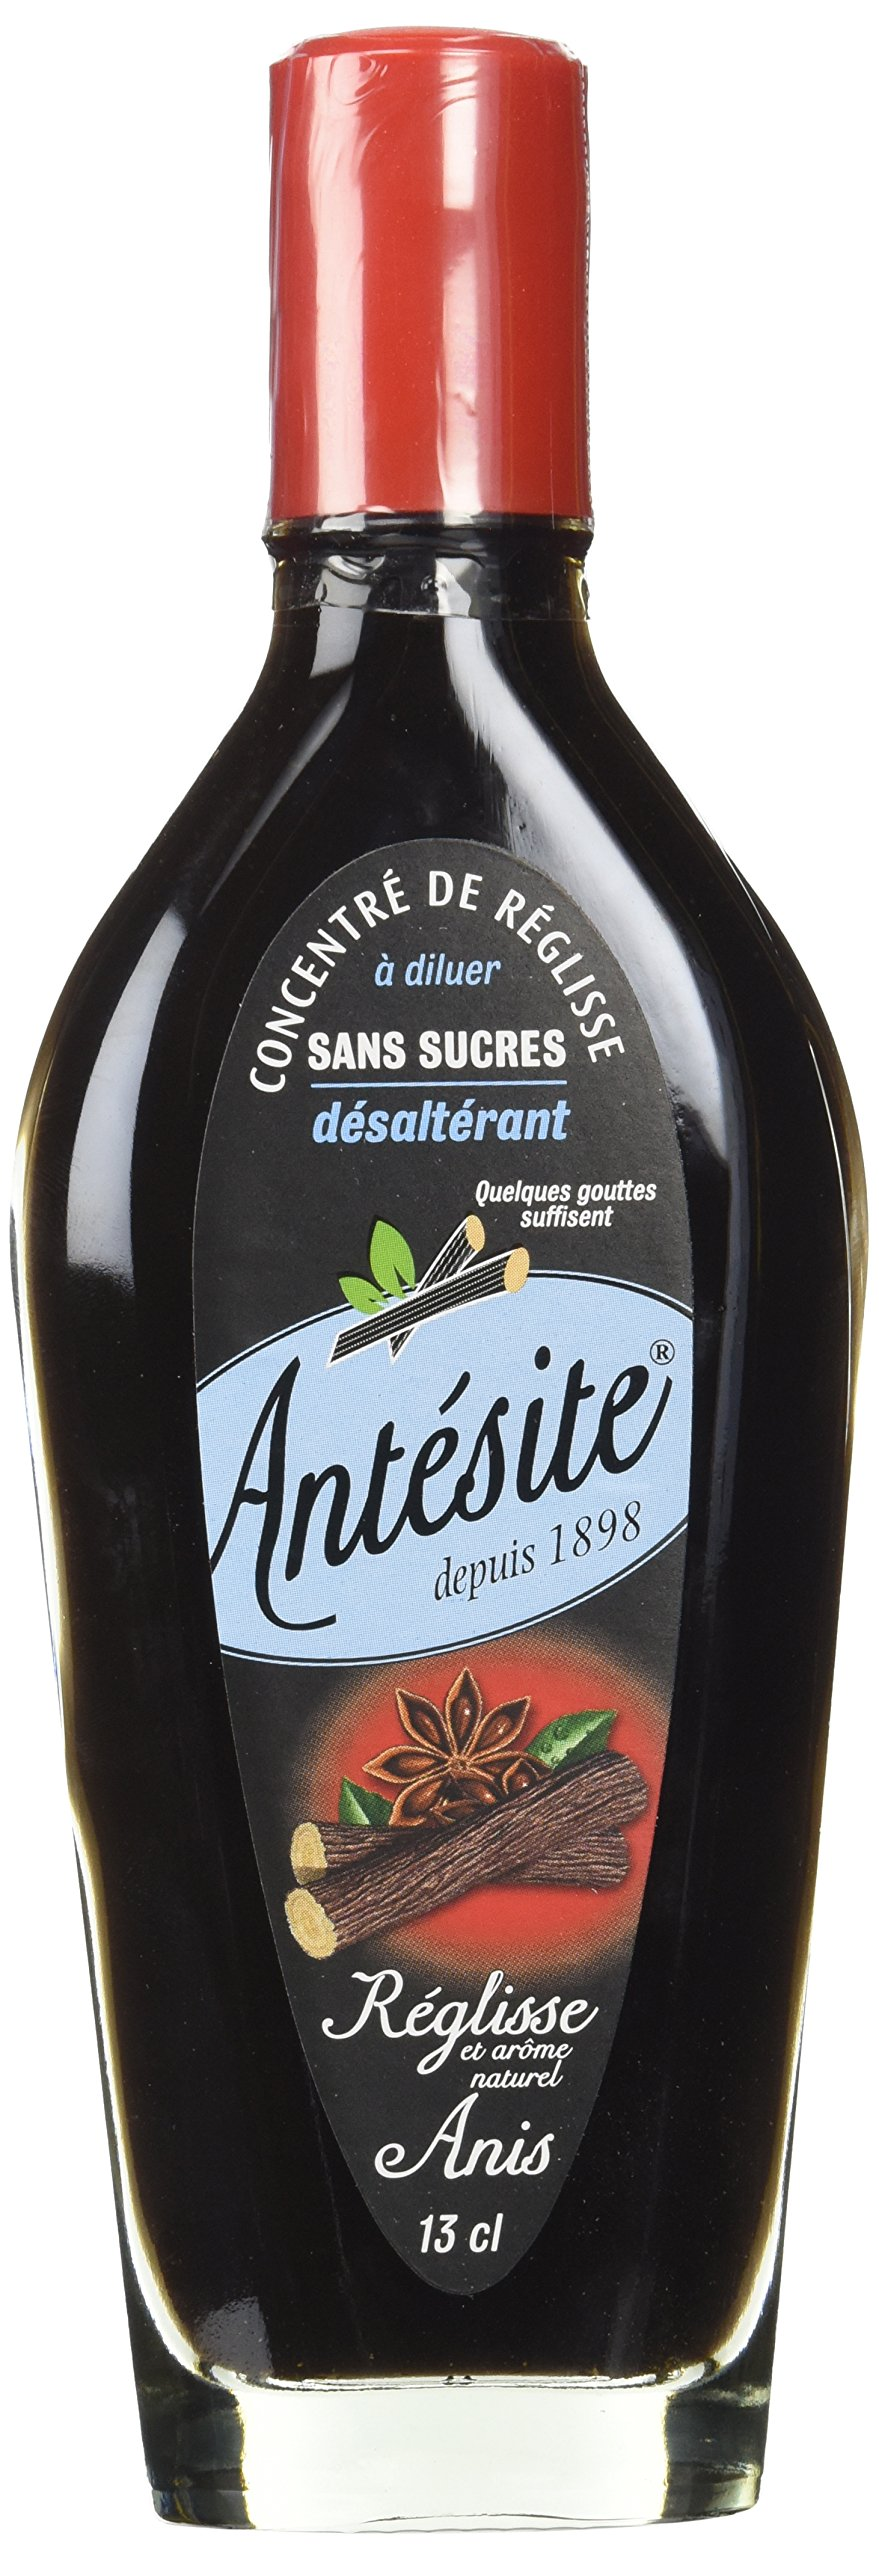 Antesite Anise Concentrate Drink 4.4 fl oz